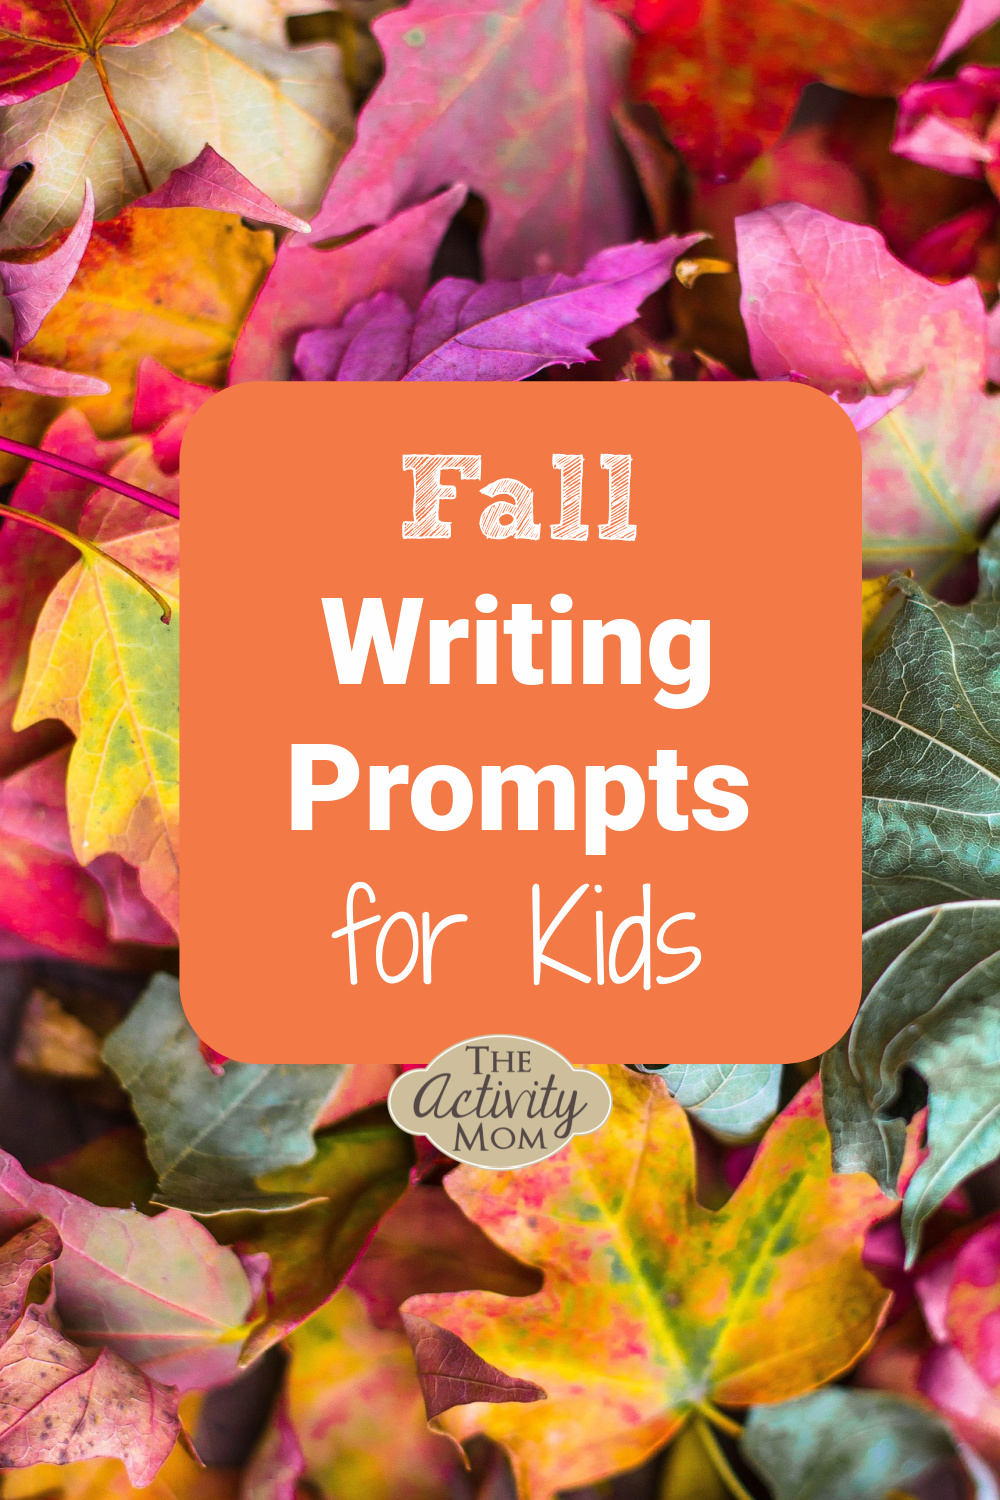 Fall Writing Prompts for Kids